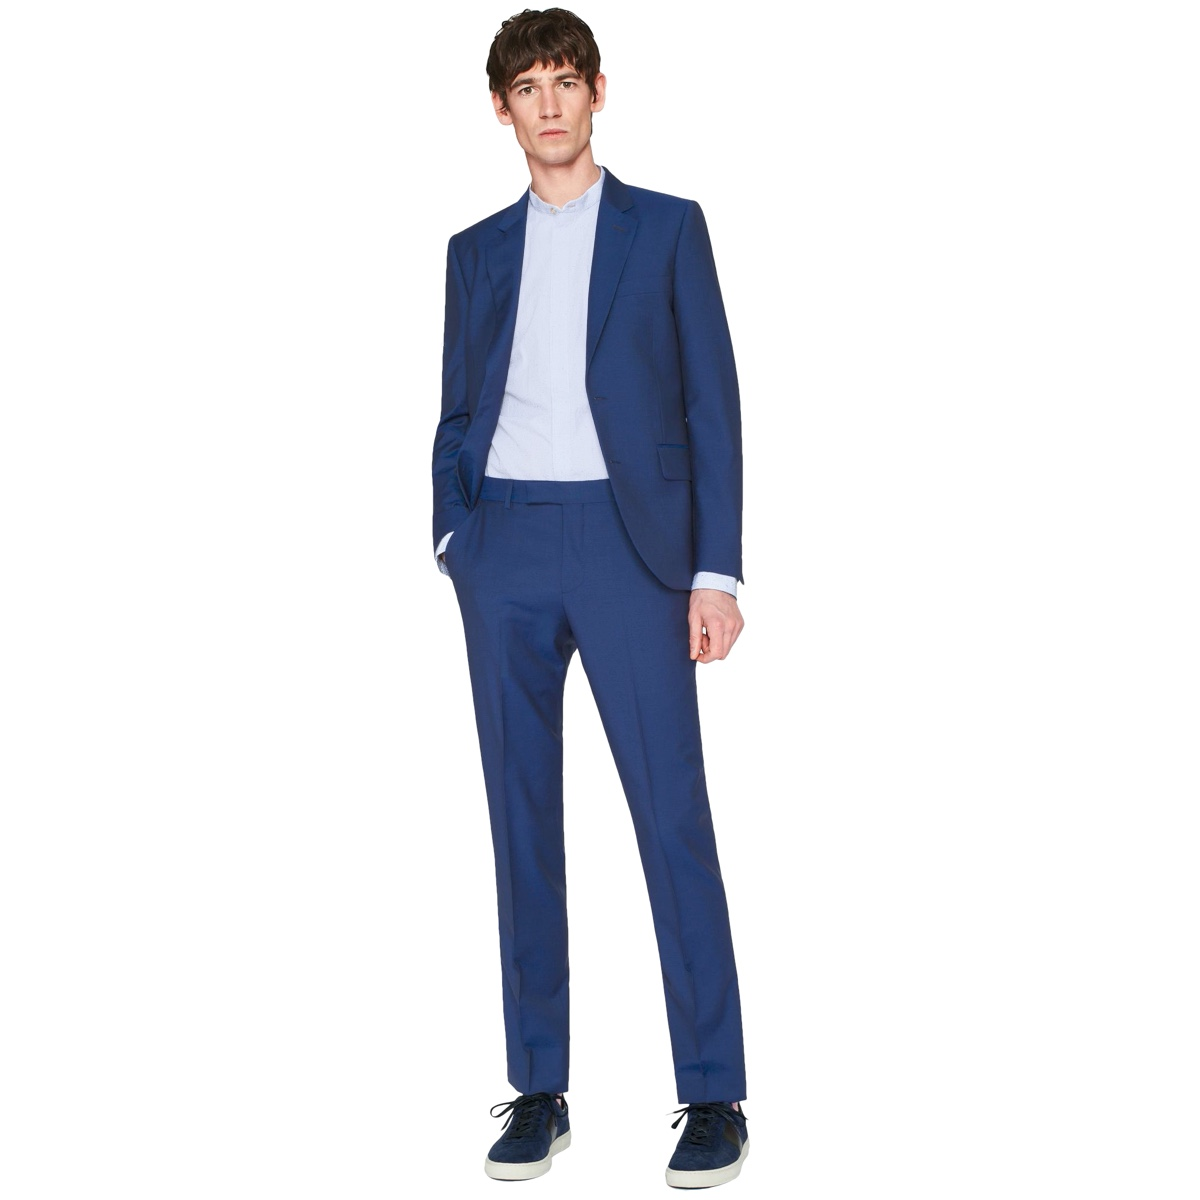 paul-smith-indigo-The-Soho-Tailored-Fit-Indigo-Wool-Mohair-Suit-A-Suit-To-Travel-In (1).jpg